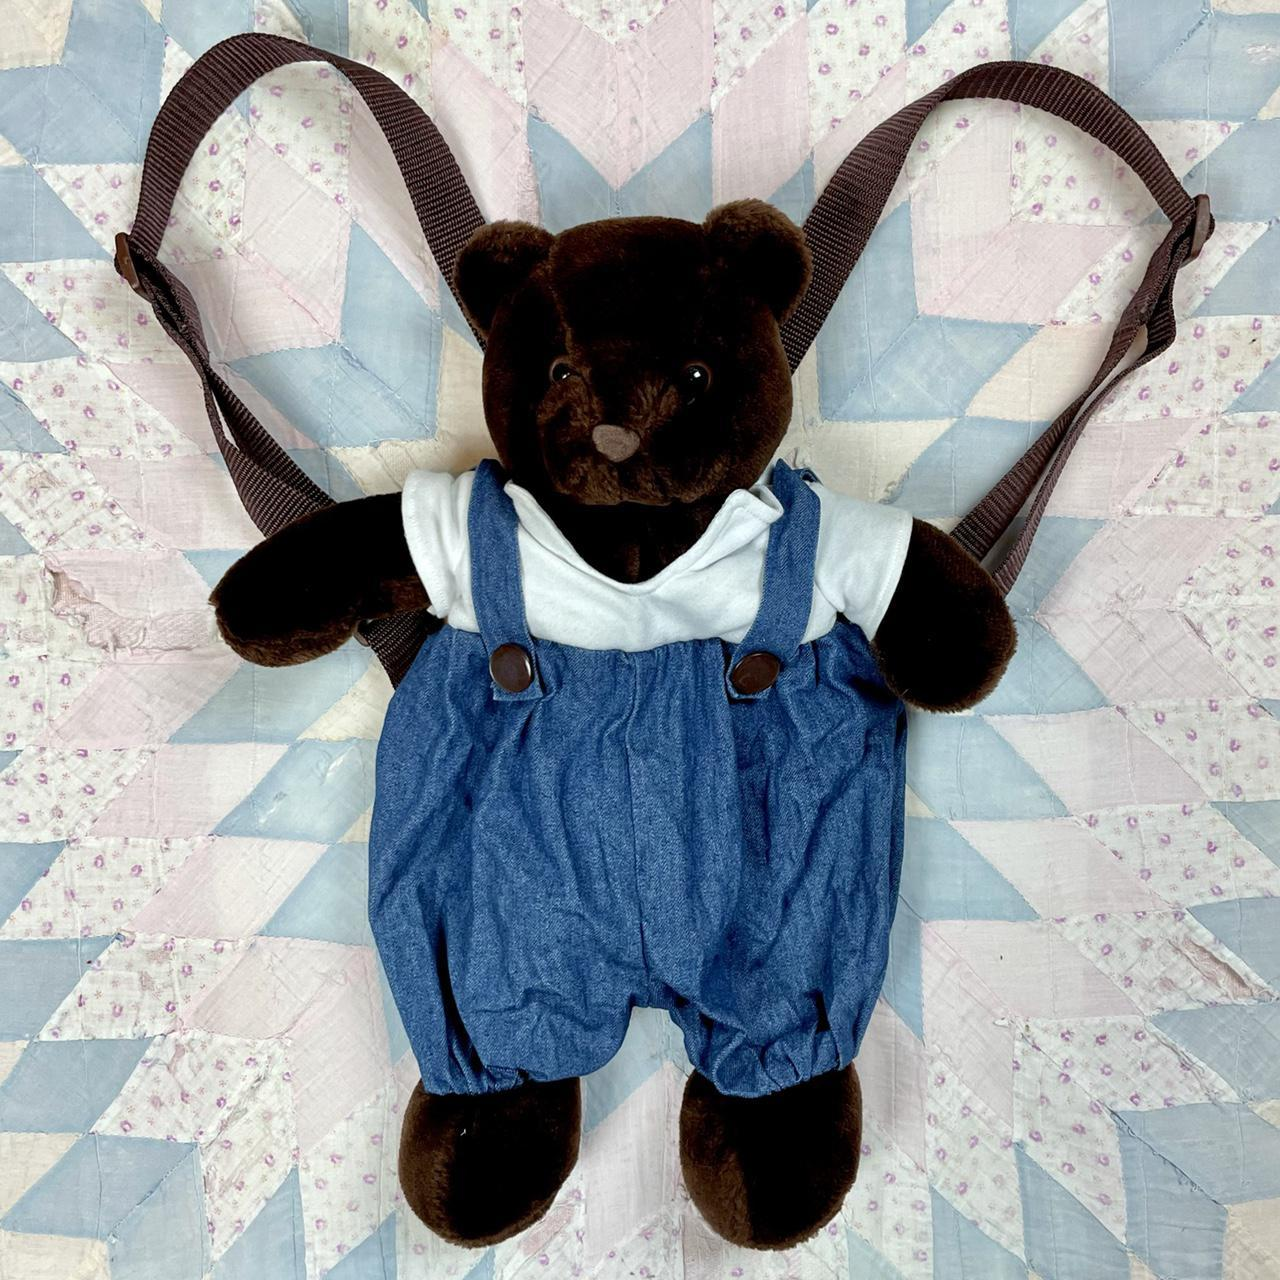 Product Image 1 - Adorable vintage 90s mid-sized teddy